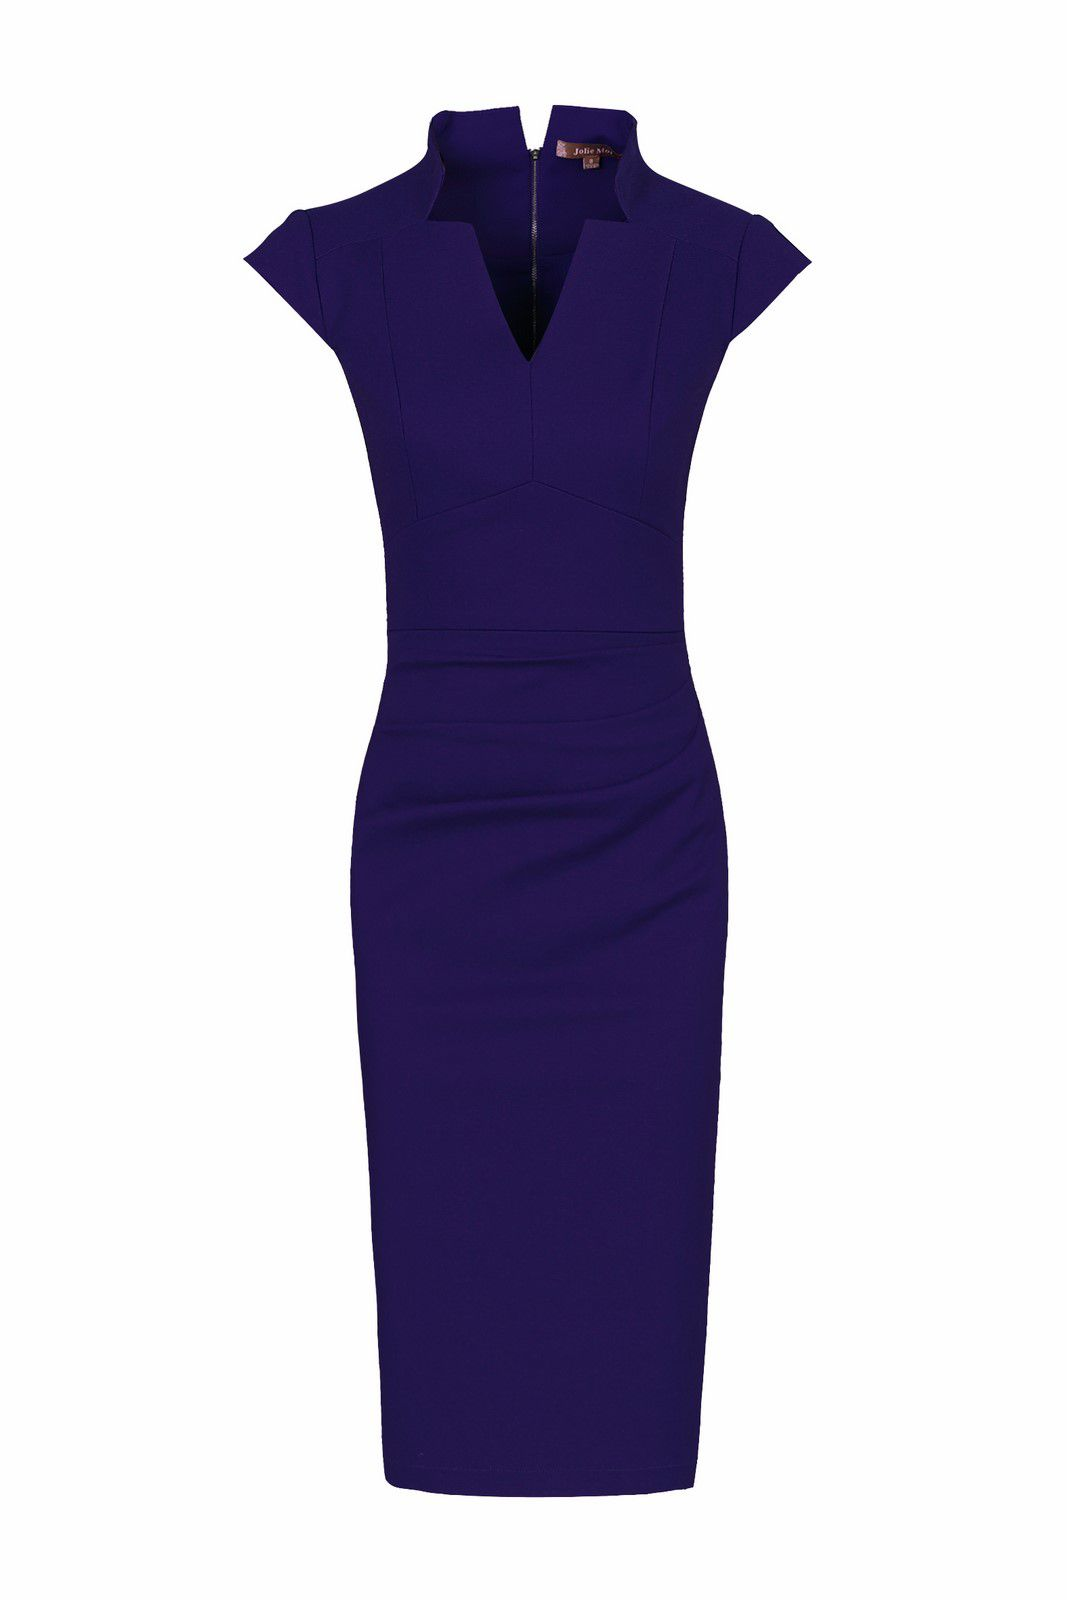 Jolie Moi High Collar V Neck Ruched Dress, Royal Blue